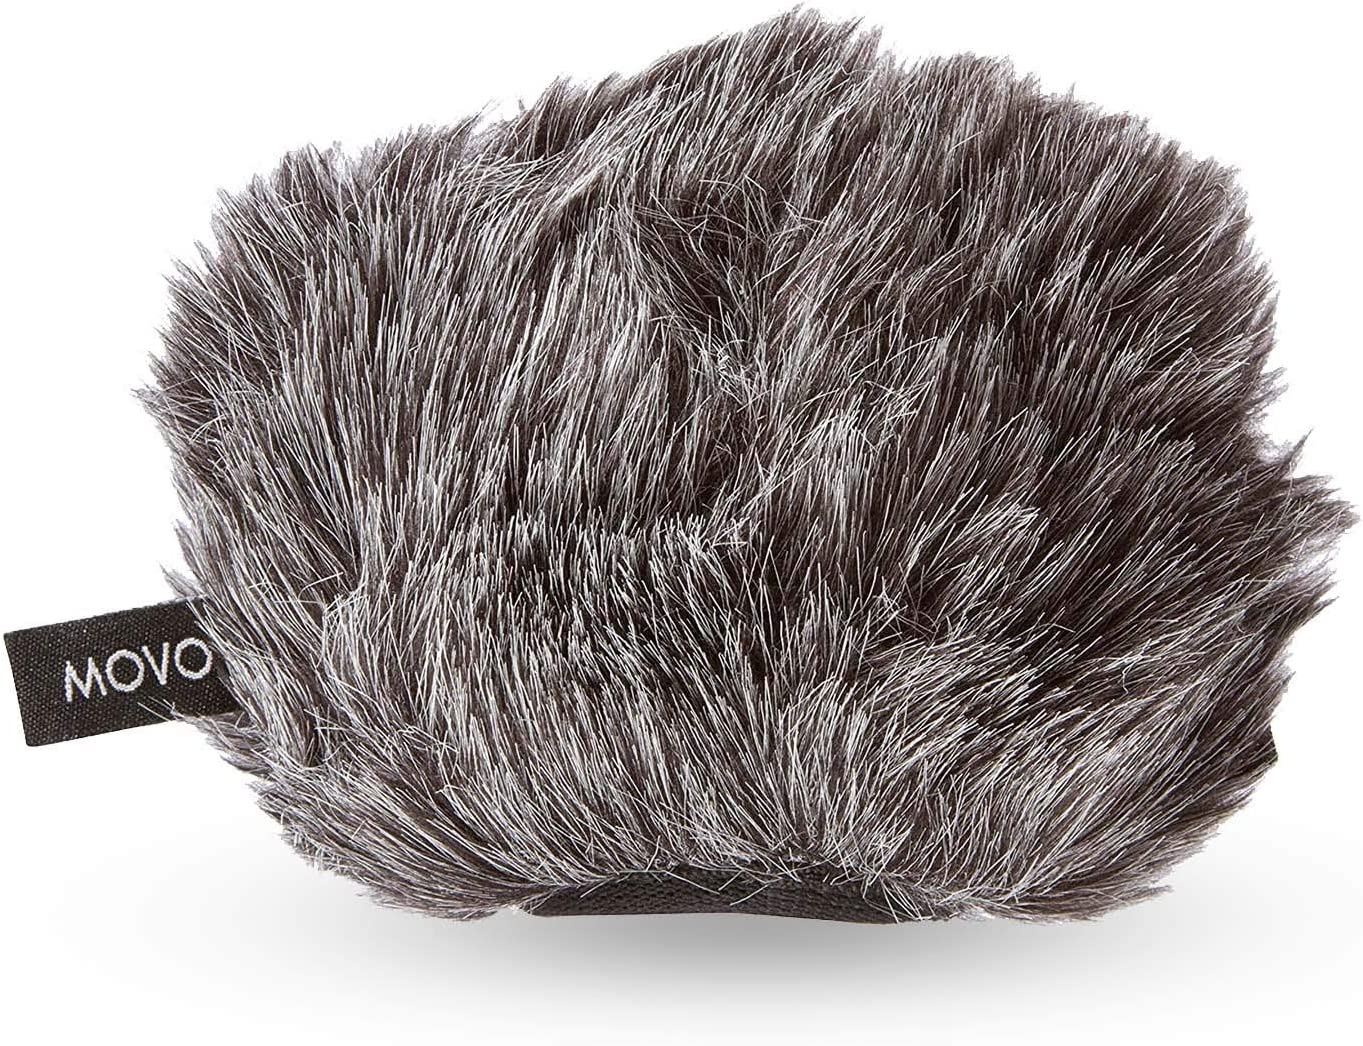 Movo WS-G9 Furry Outdoor Microphone Windscreen Brand Cheap Sale Max 41% OFF Venue Muff for Portable